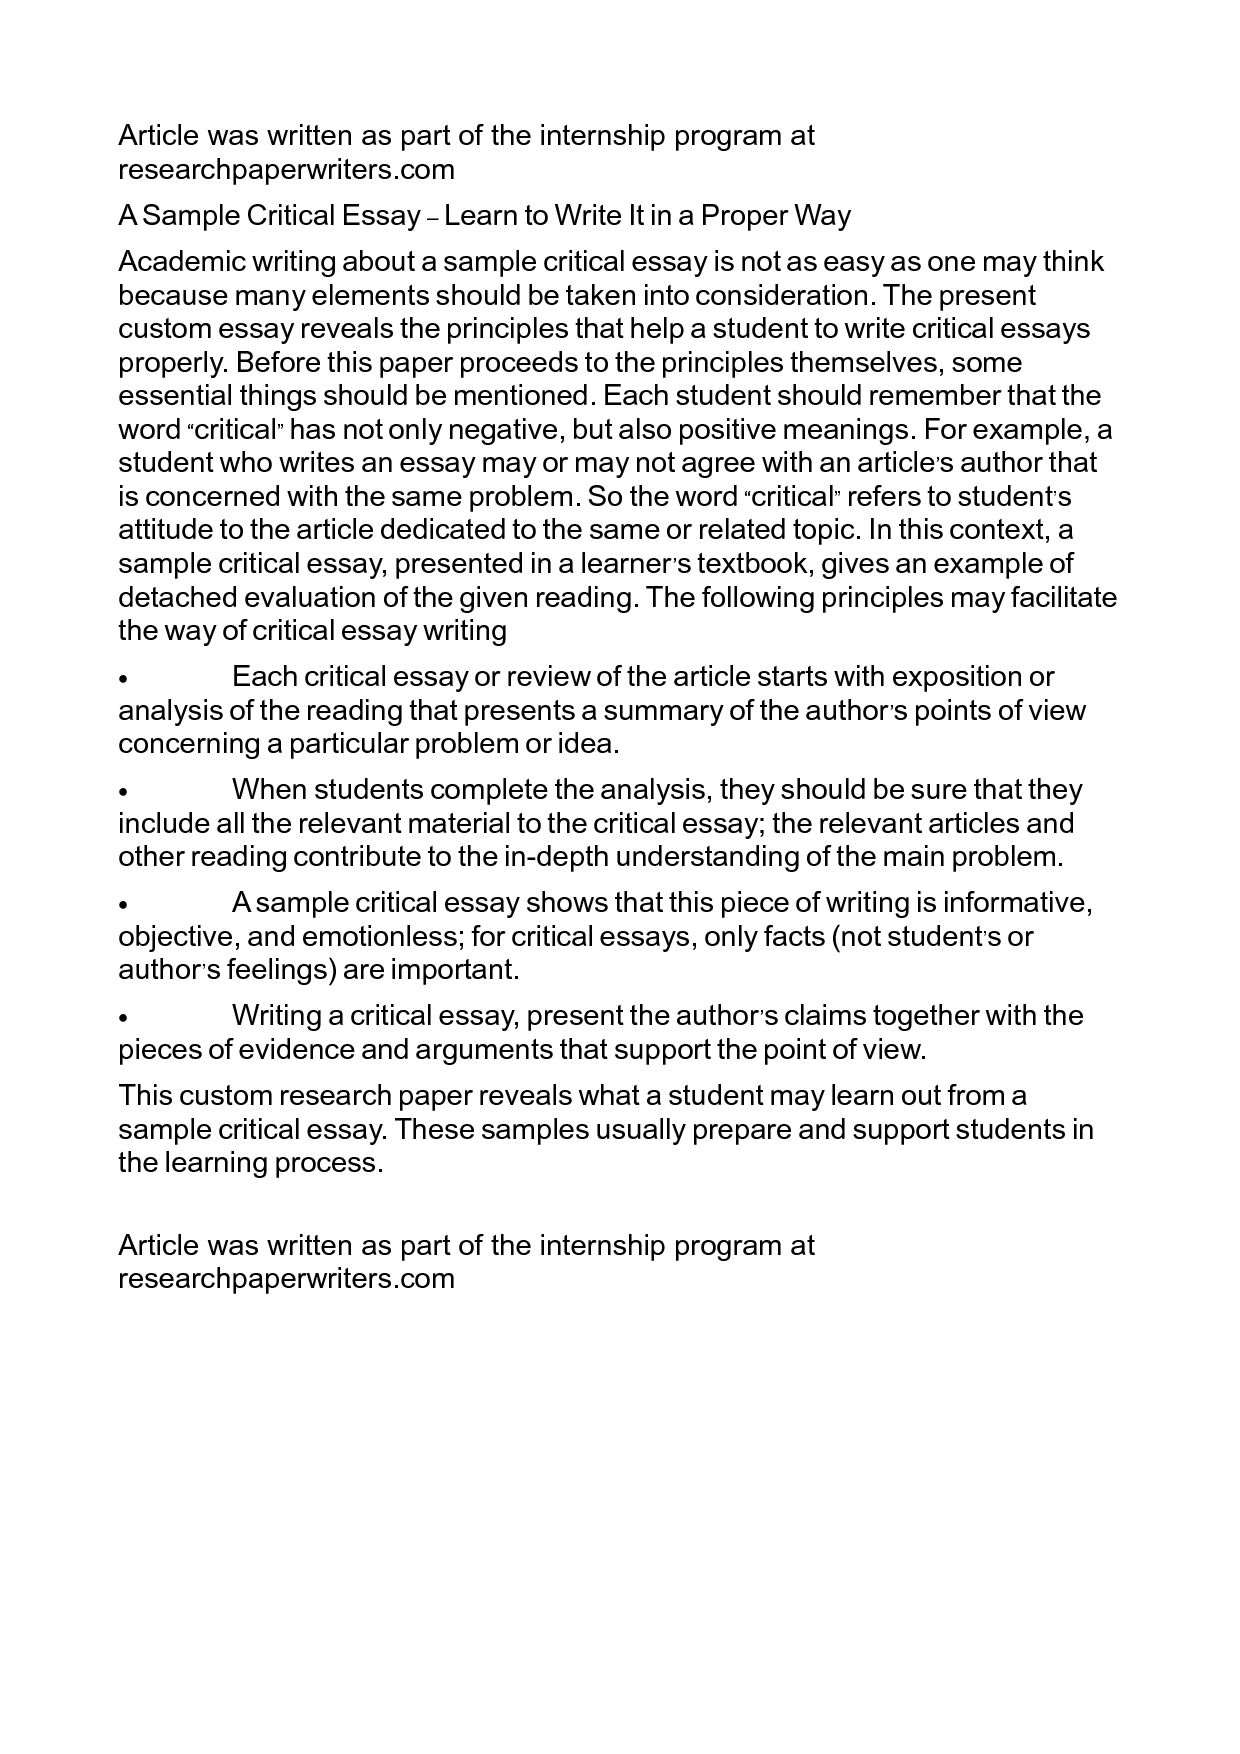 college biology essay Just say write my essay for me and our experienced paper writers will be happy   similarly, a biology lab report is critical in your biology coursework during that   some of the components of research papers that college students struggle with .